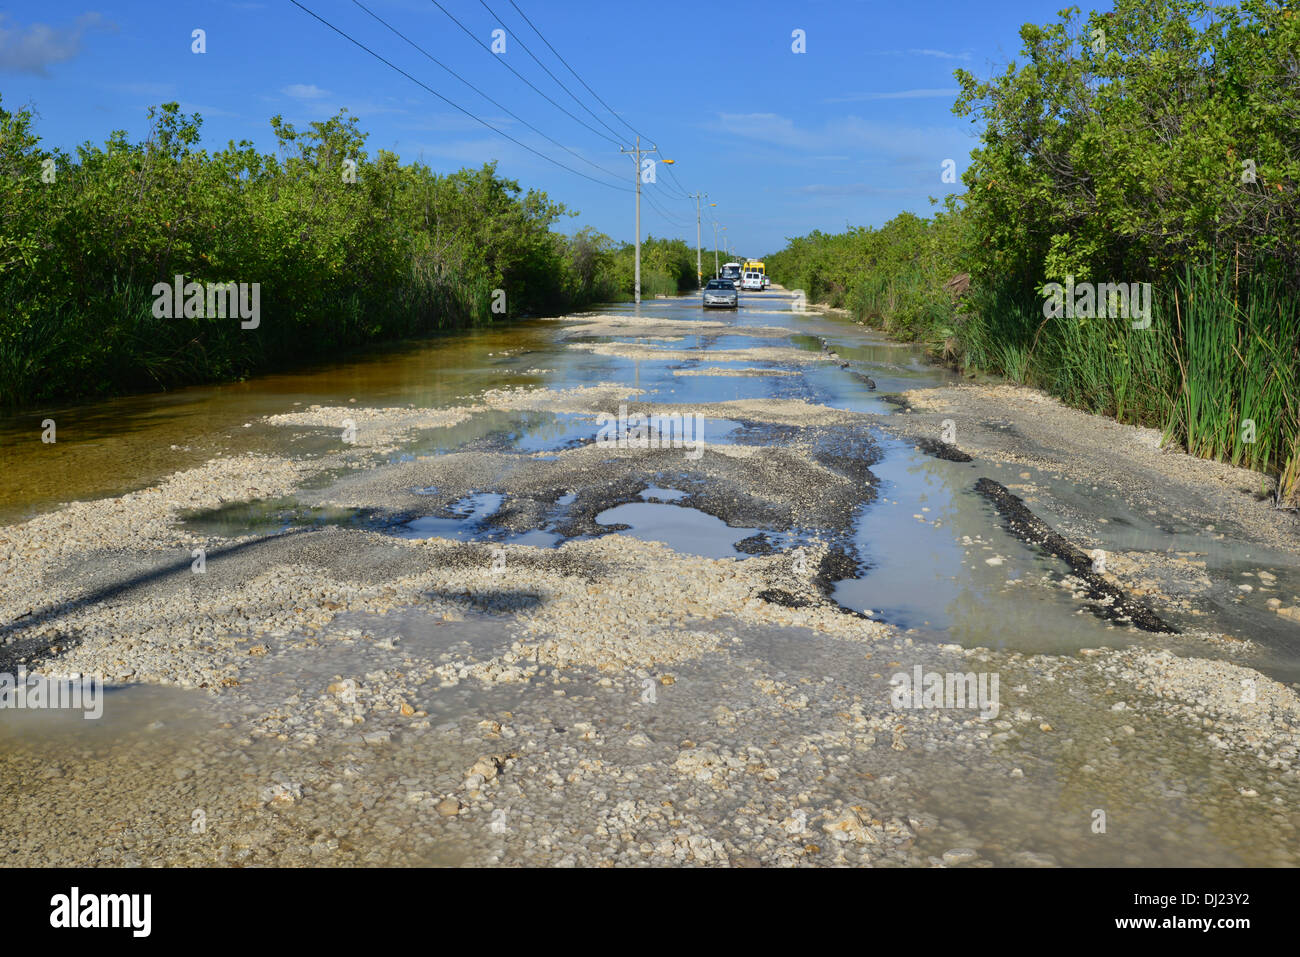 a flooded rutted road in mexico stock photo 62741926 alamy